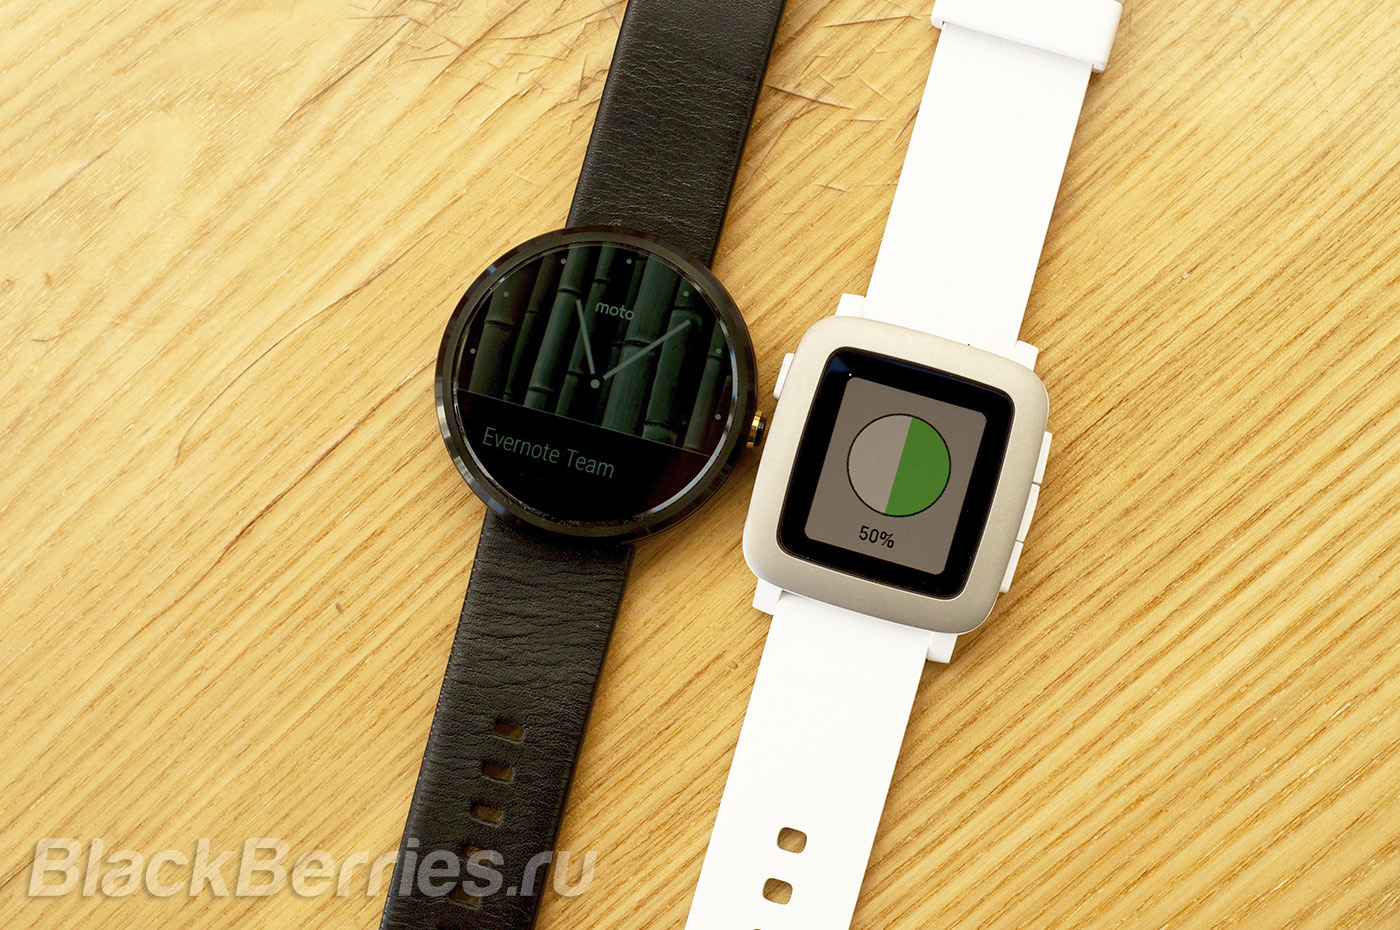 BlackBerry-Passport-Pebble-Time-16